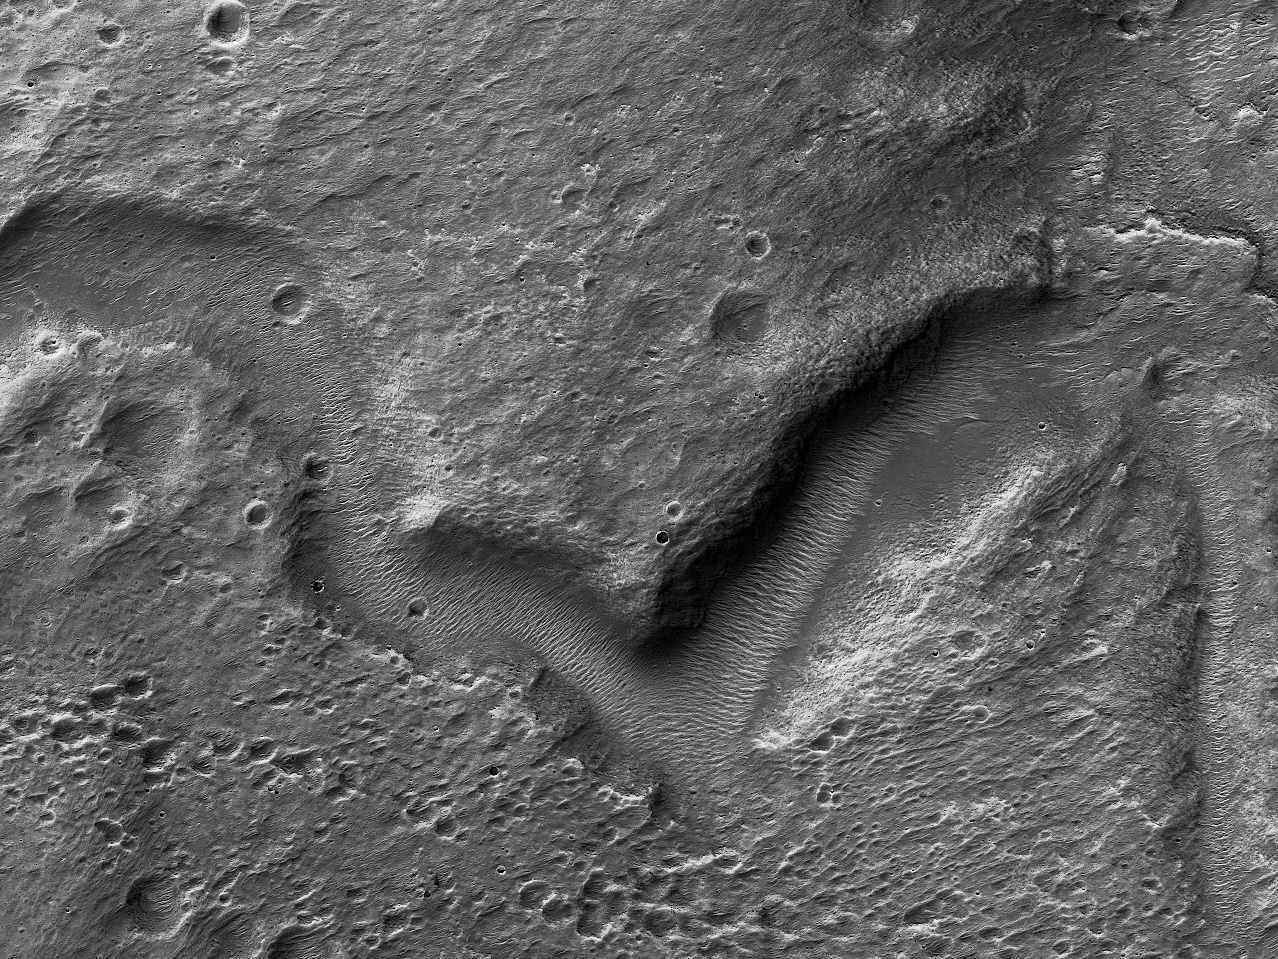 Valleys in a Crater in Terra Cimmeria